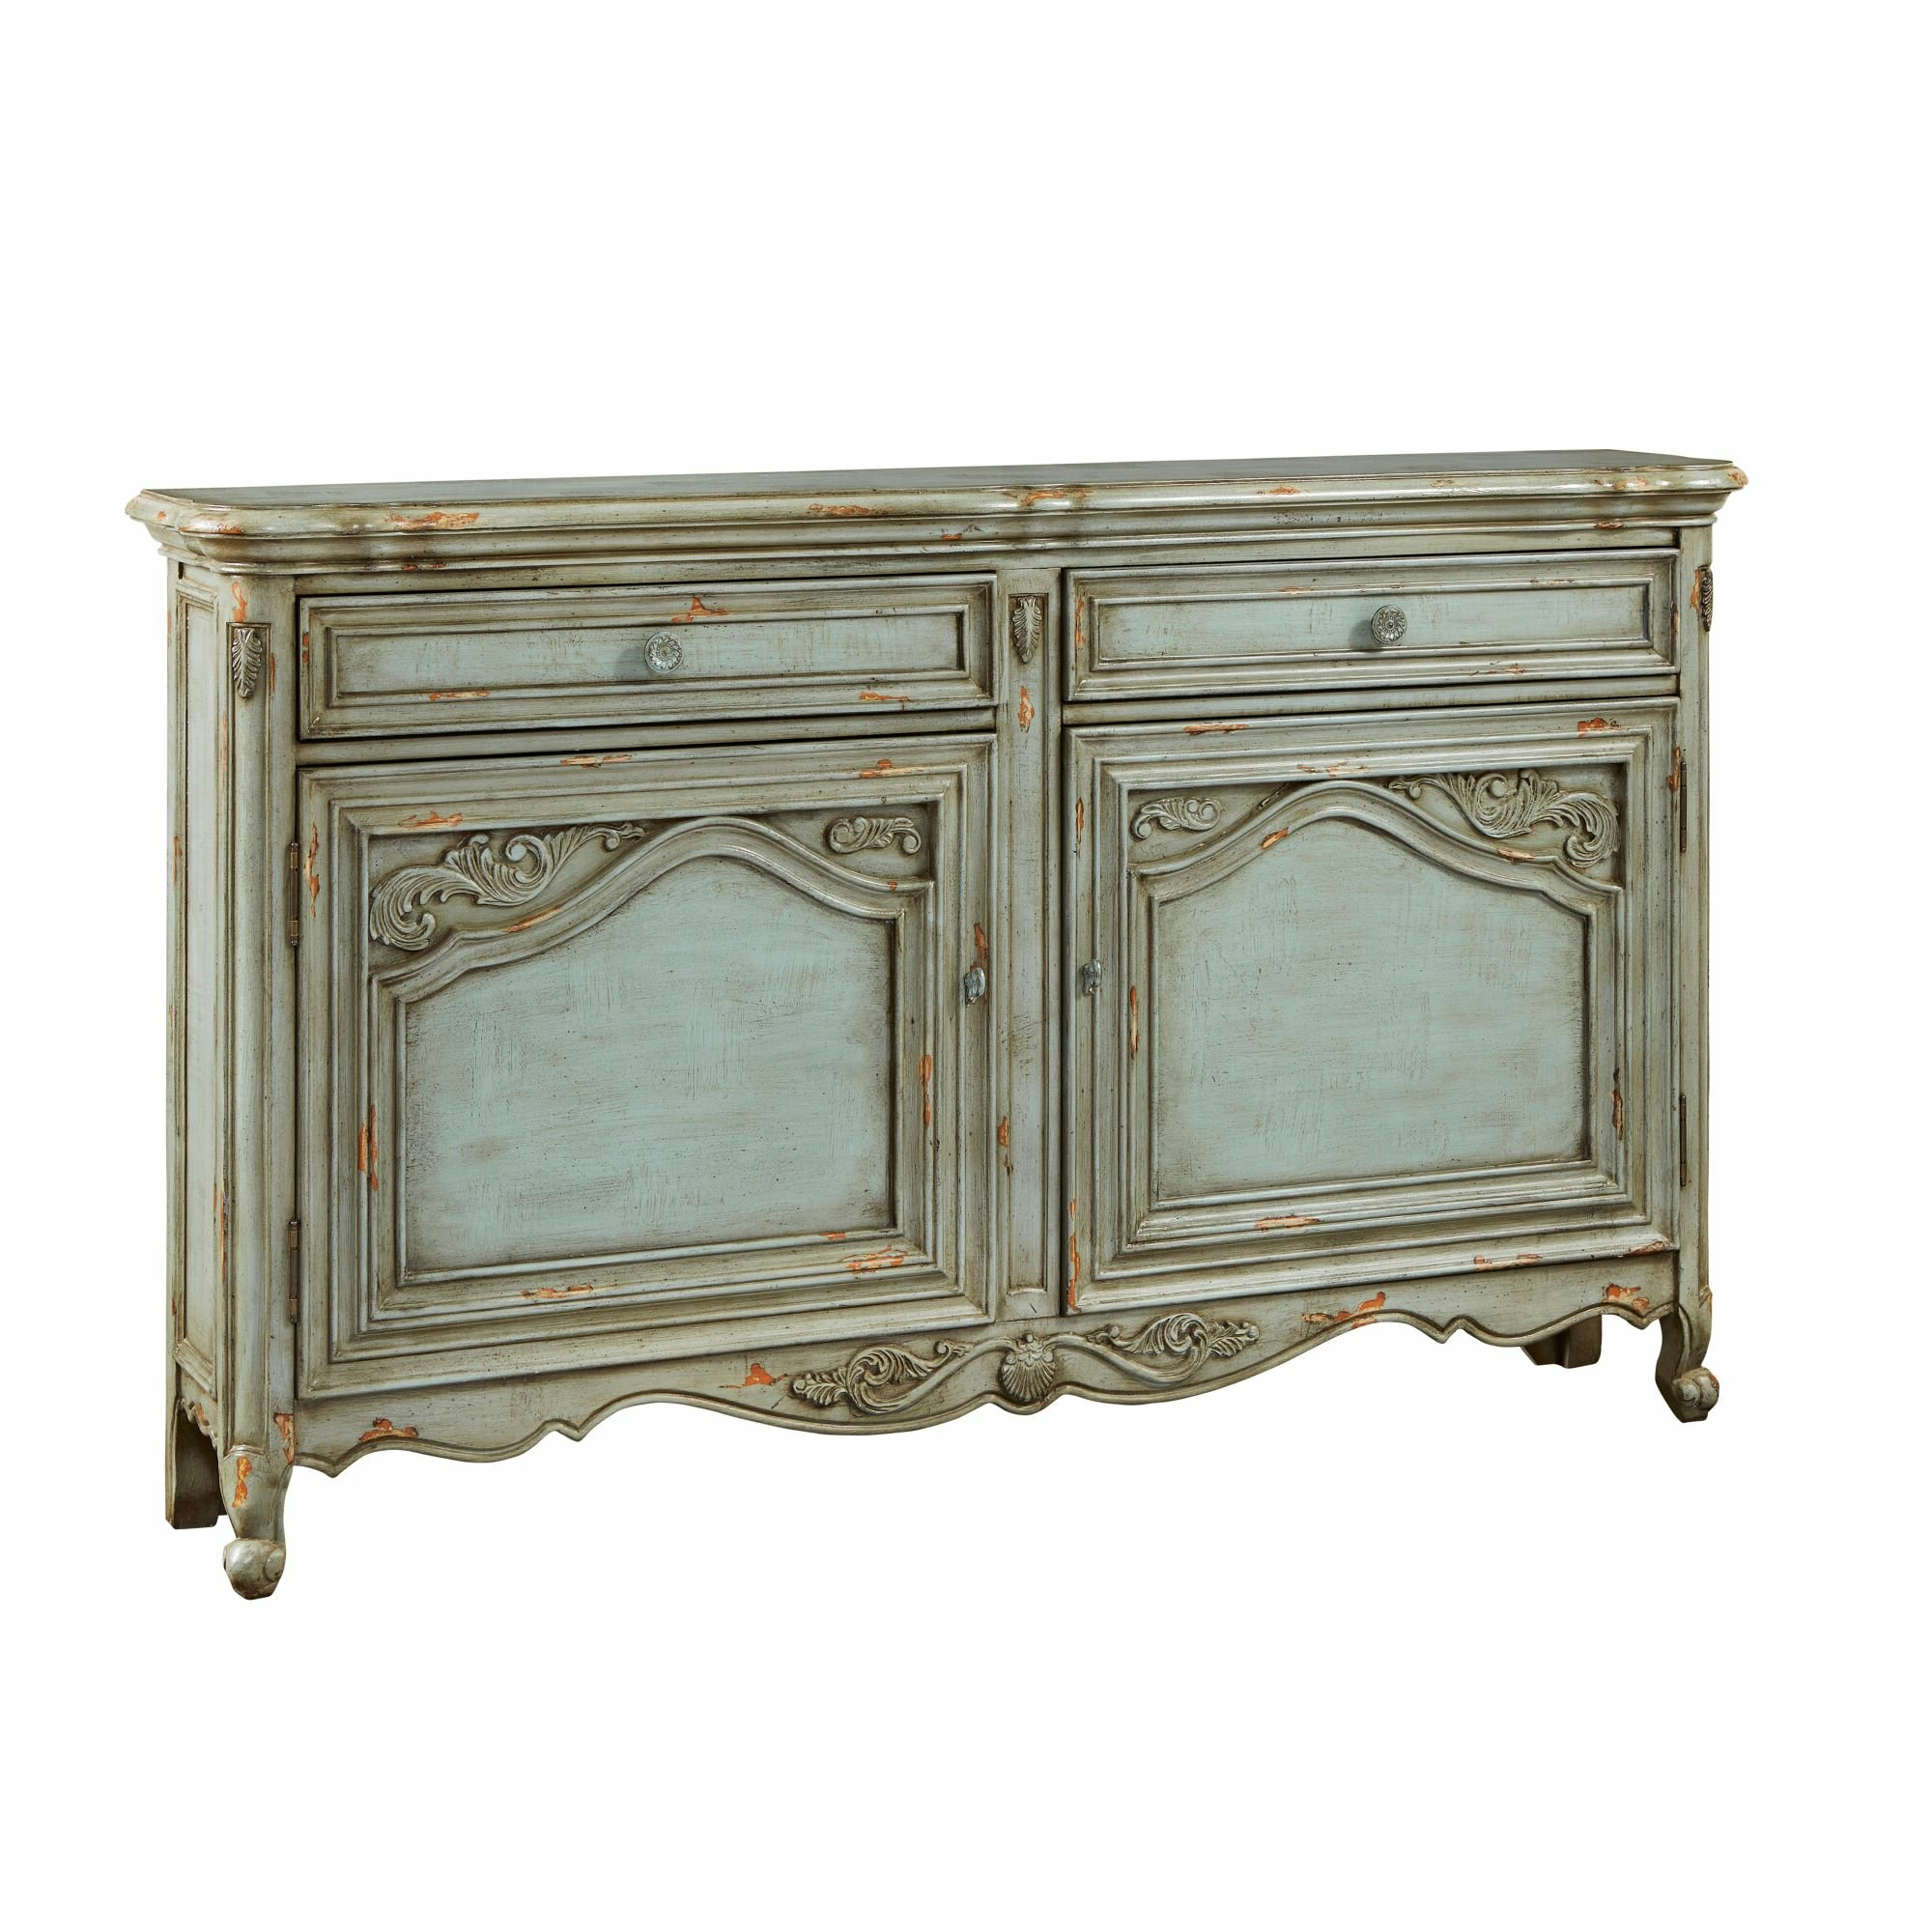 Farmhouse & Rustic Distressed Finish Sideboards & Buffets Regarding Chicoree Charlena Sideboards (View 7 of 20)